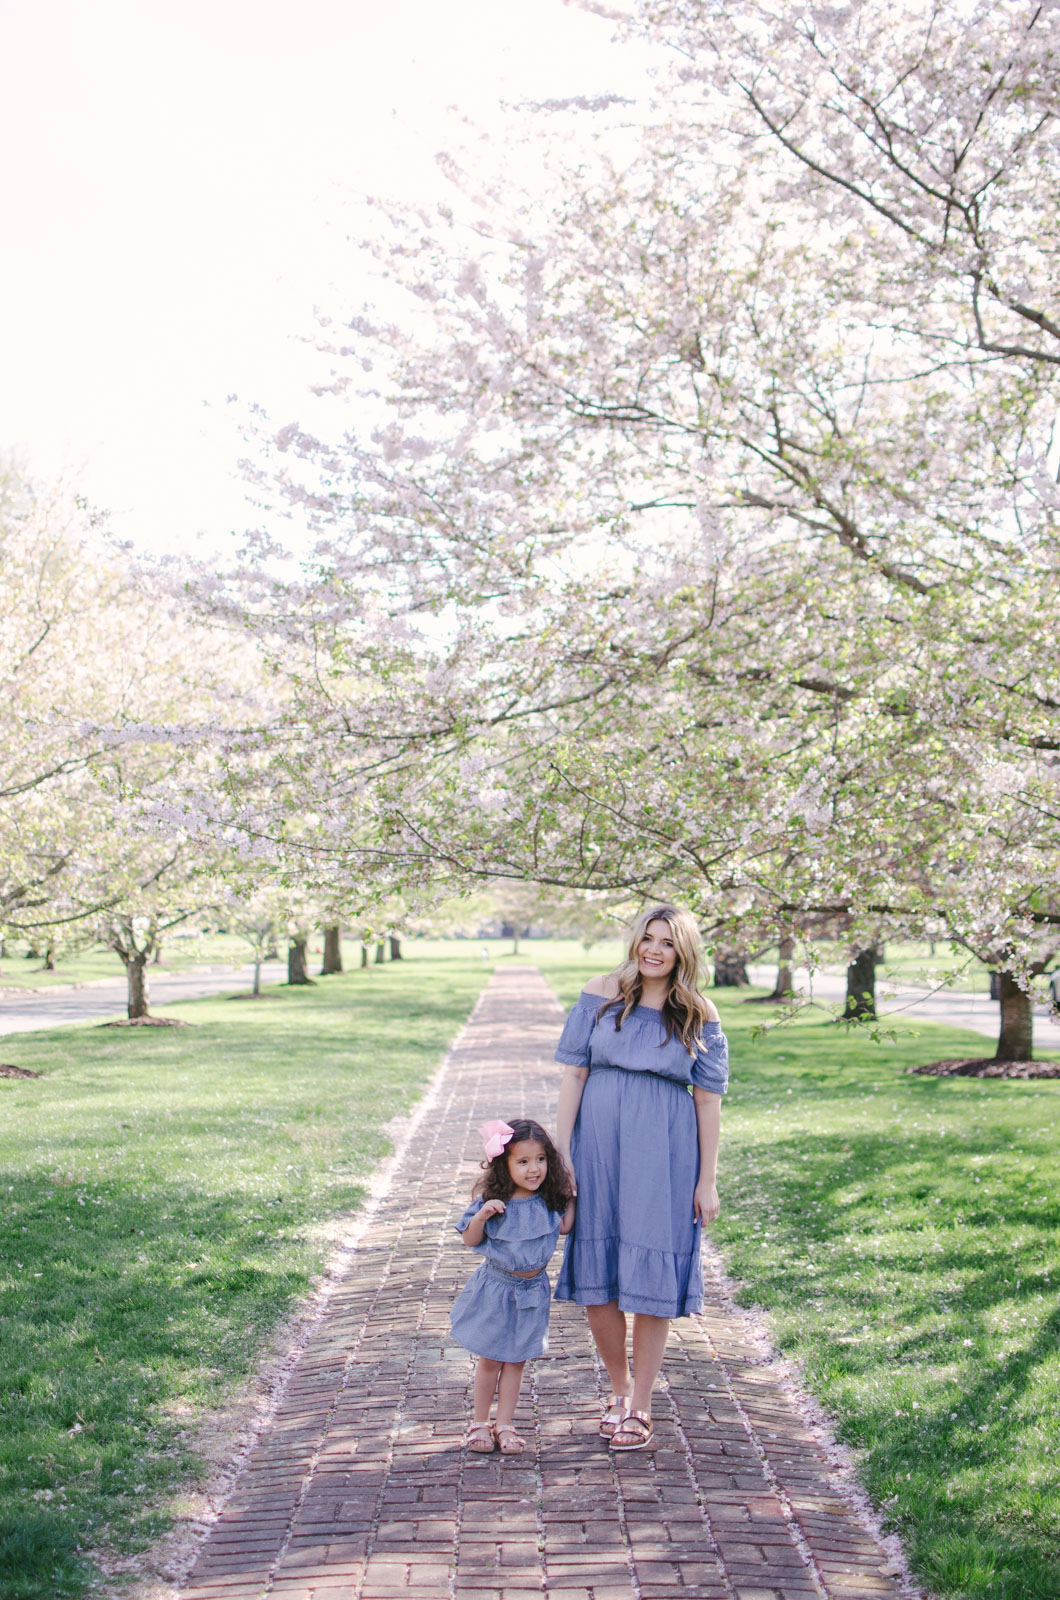 spring mommy and me outfit - spring chambray dresses | For more mommy and me outfits, see bylaurenm.com!